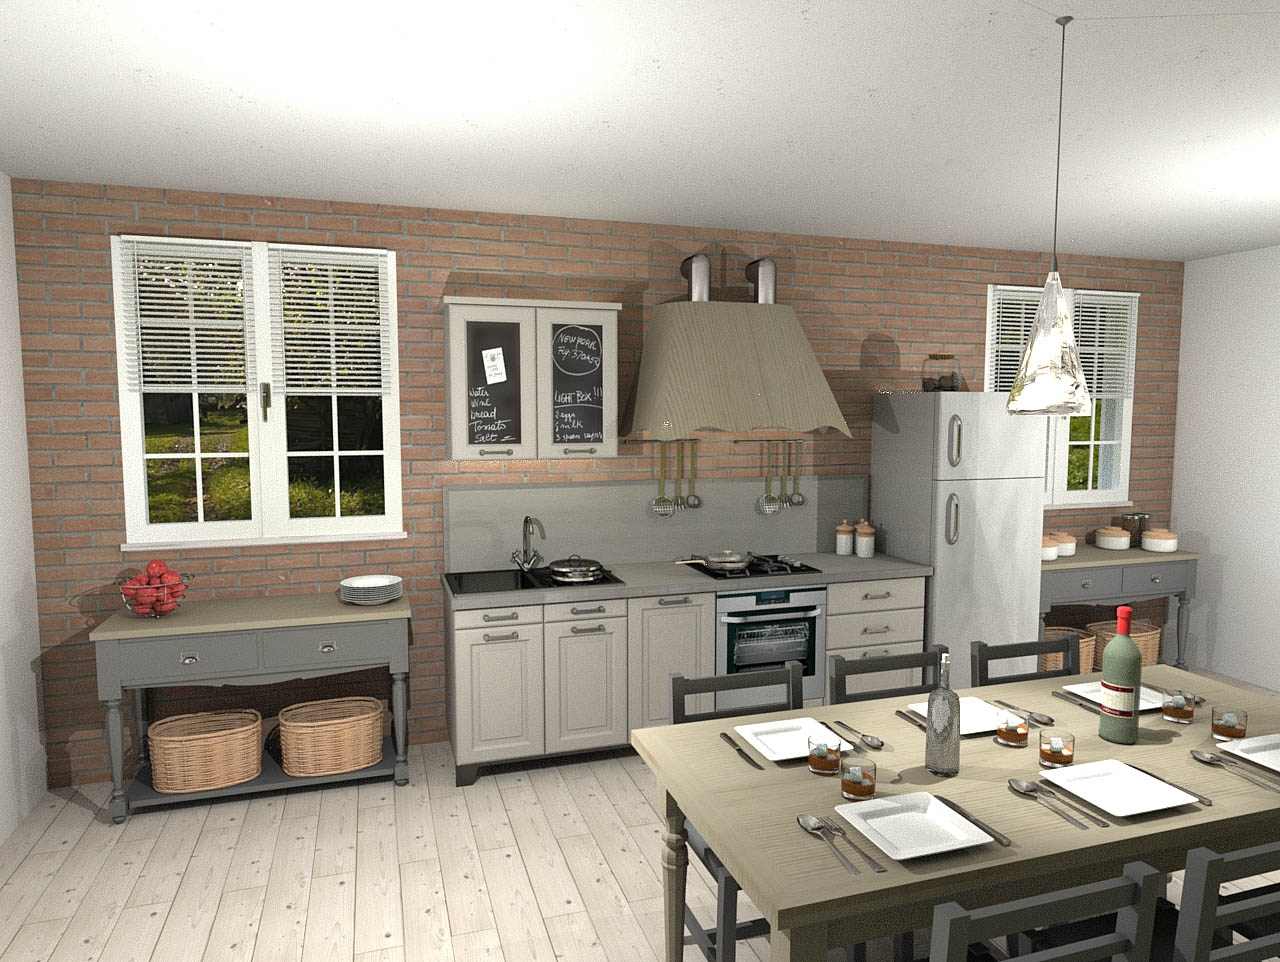 Emejing Marchi Group Cucine Prezzi Pictures - Marchi Group Cucine ...